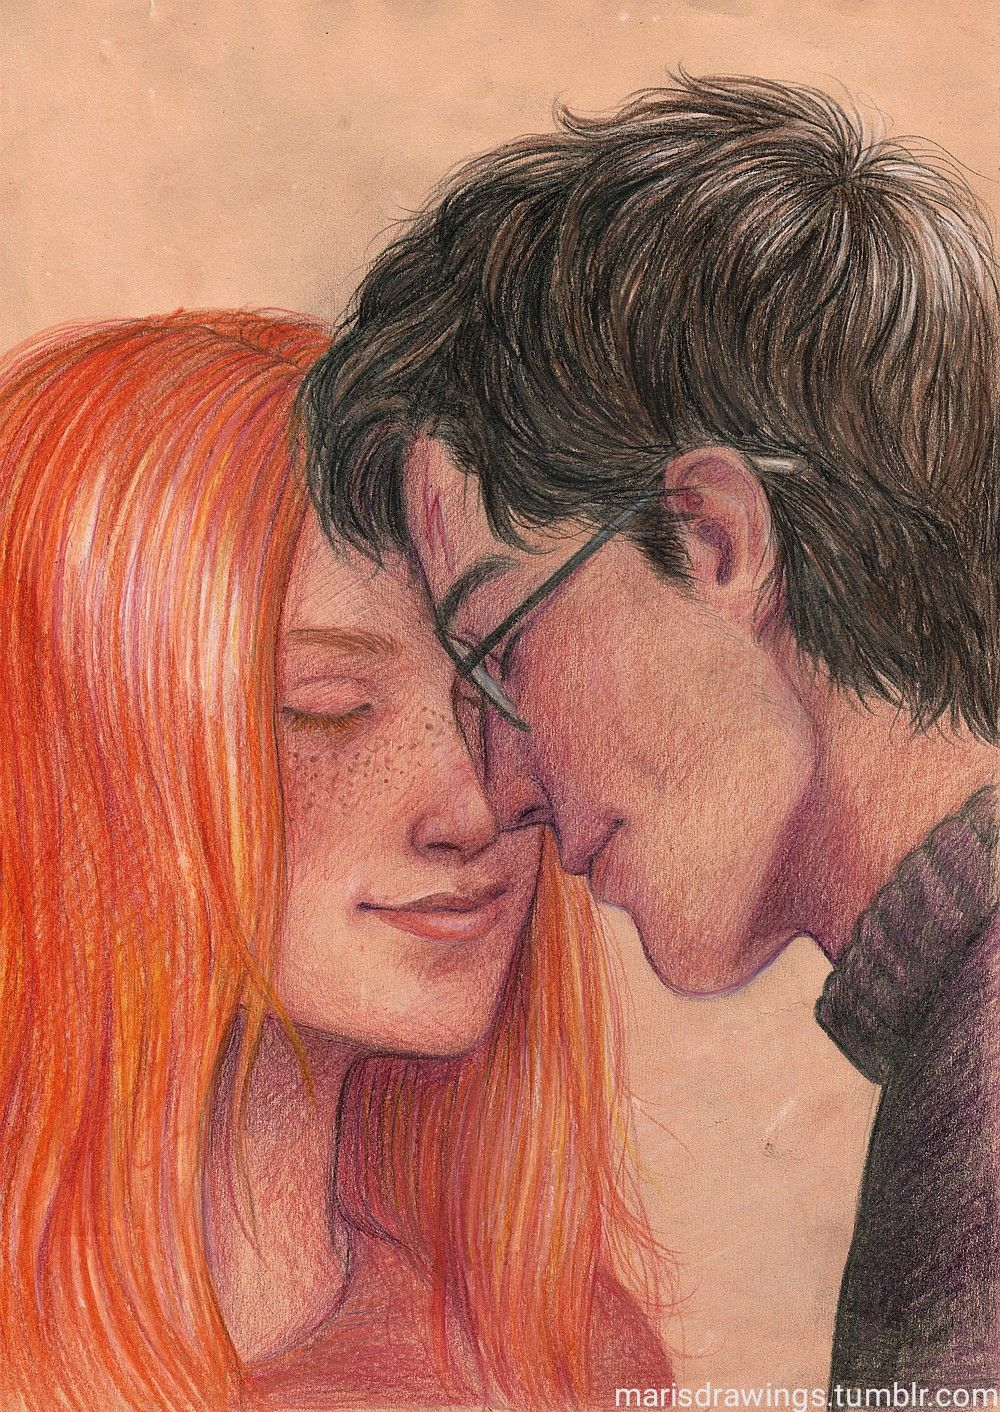 Harry And Jina Love Harry Potter Fanfiction Check Out Our Harry Potter Fanfiction Recommended Reading Lists Harry Potter Ginny Harry And Ginny Harry Potter